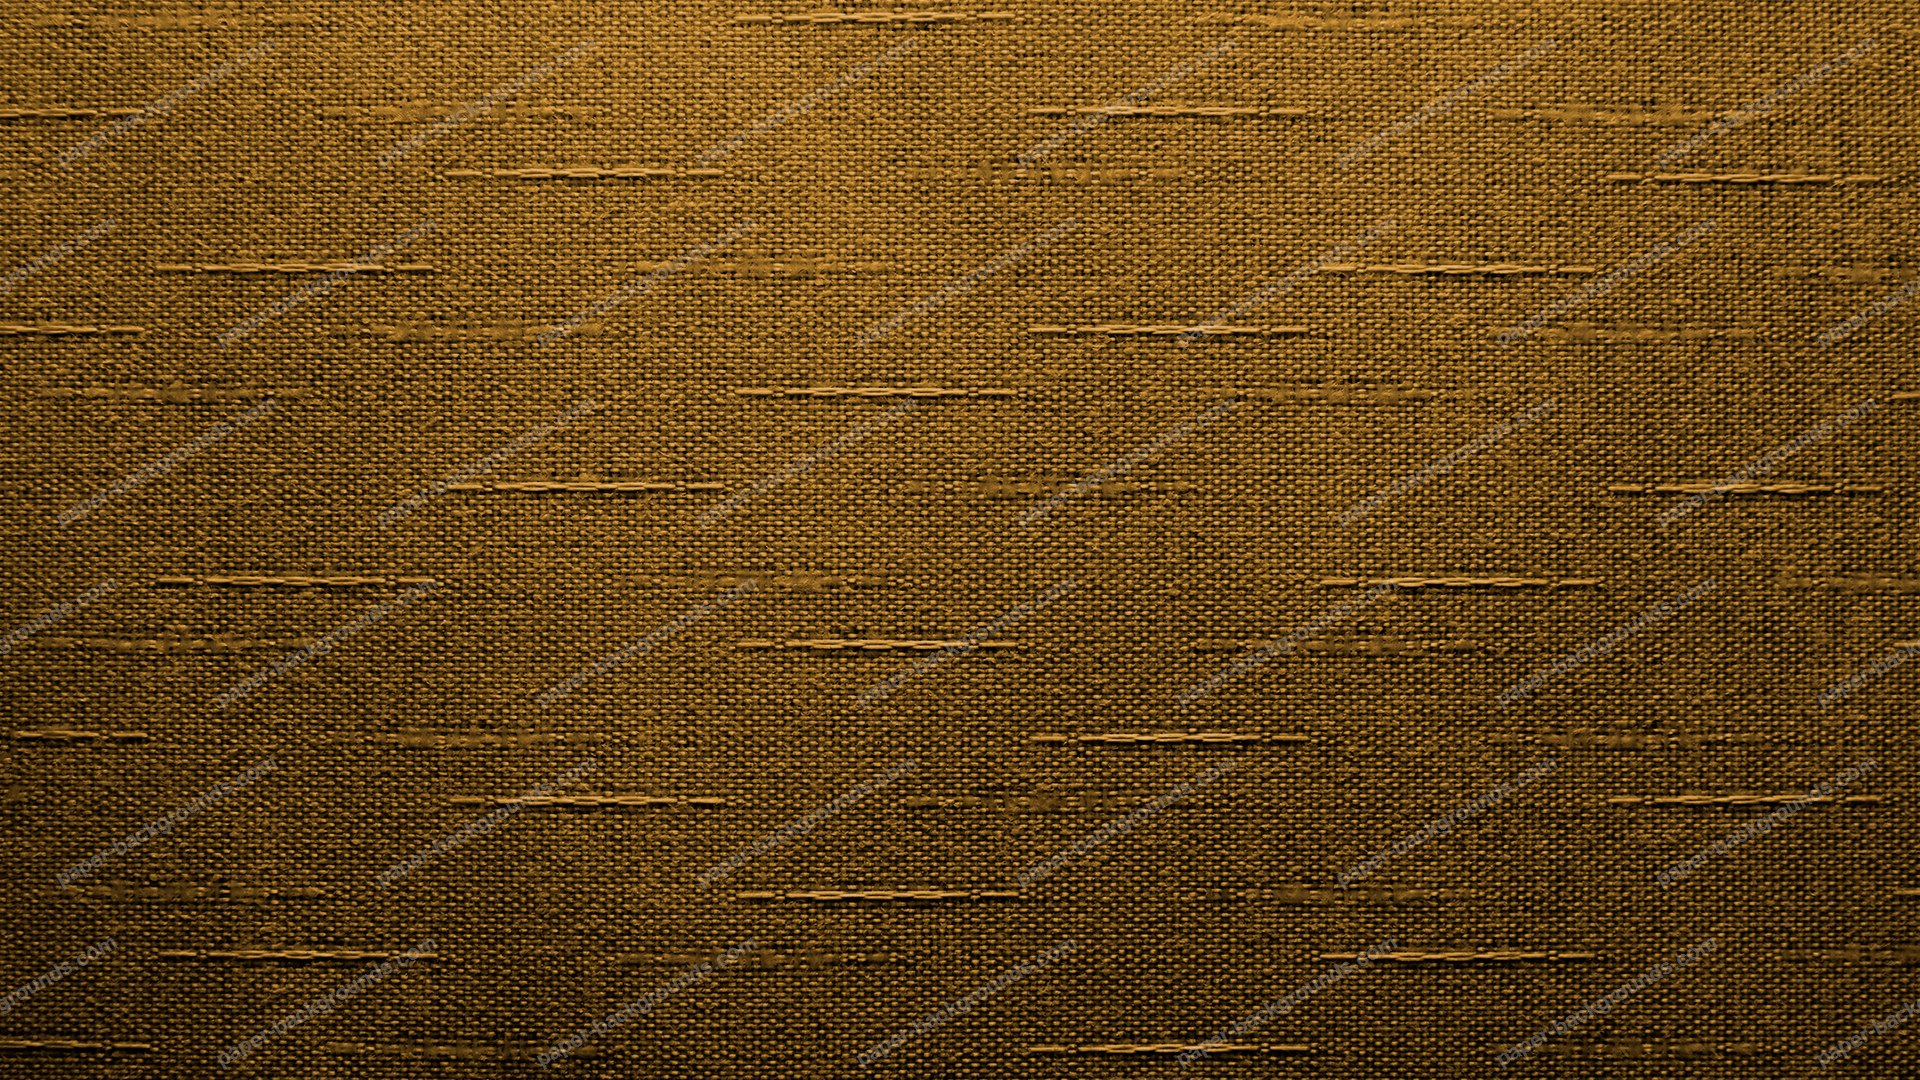 Brown Canvas Texture Background HD 1920 x 1080p